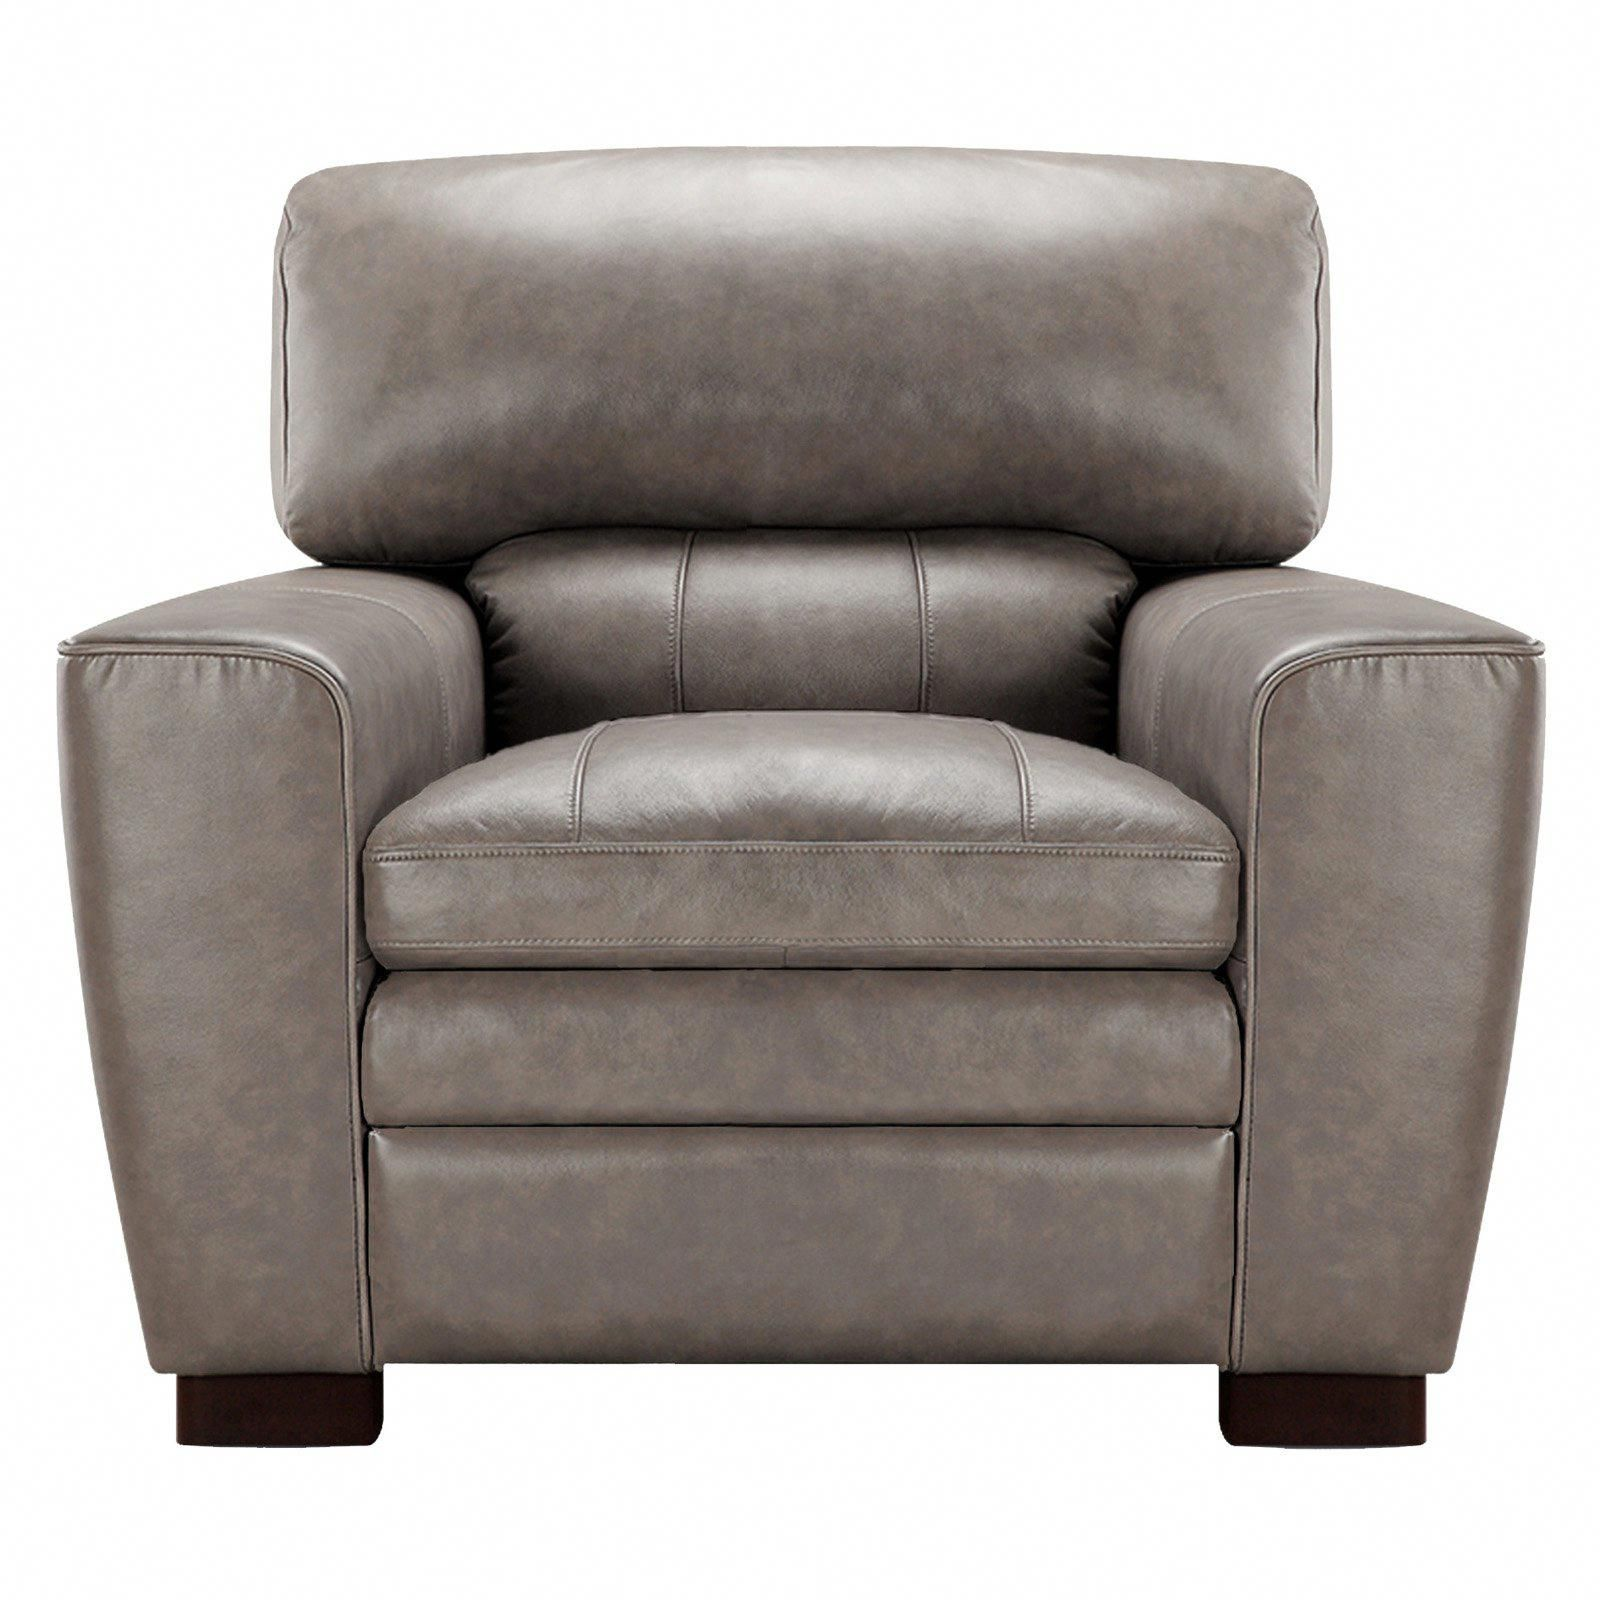 Comfy oversized chair with ottoman chairsfordiningtable